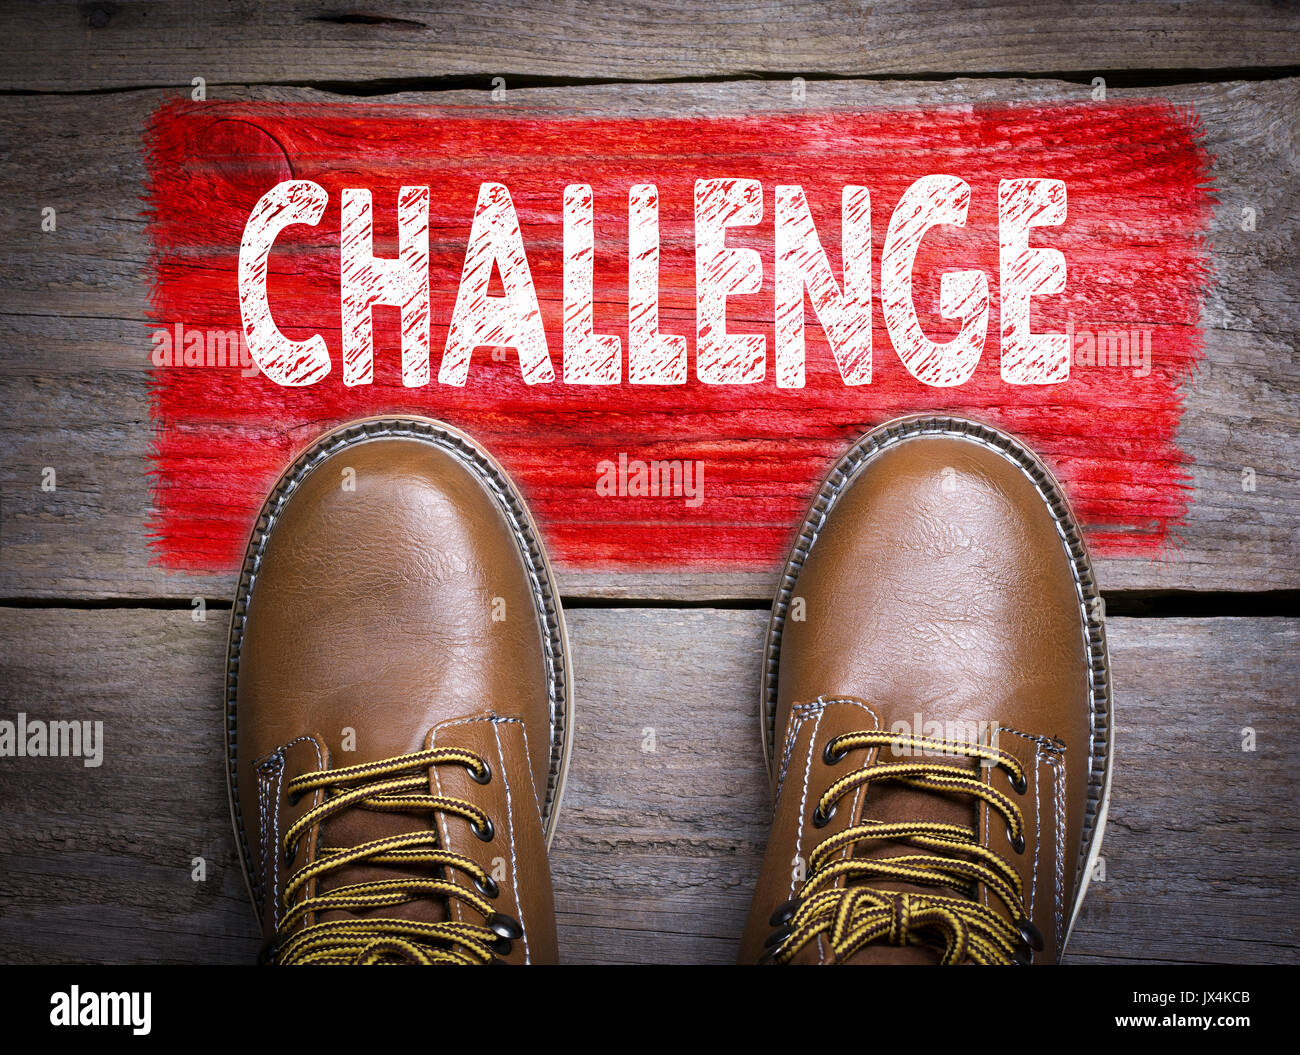 Challenge. Top View of Boot on wooden background. - Stock Image